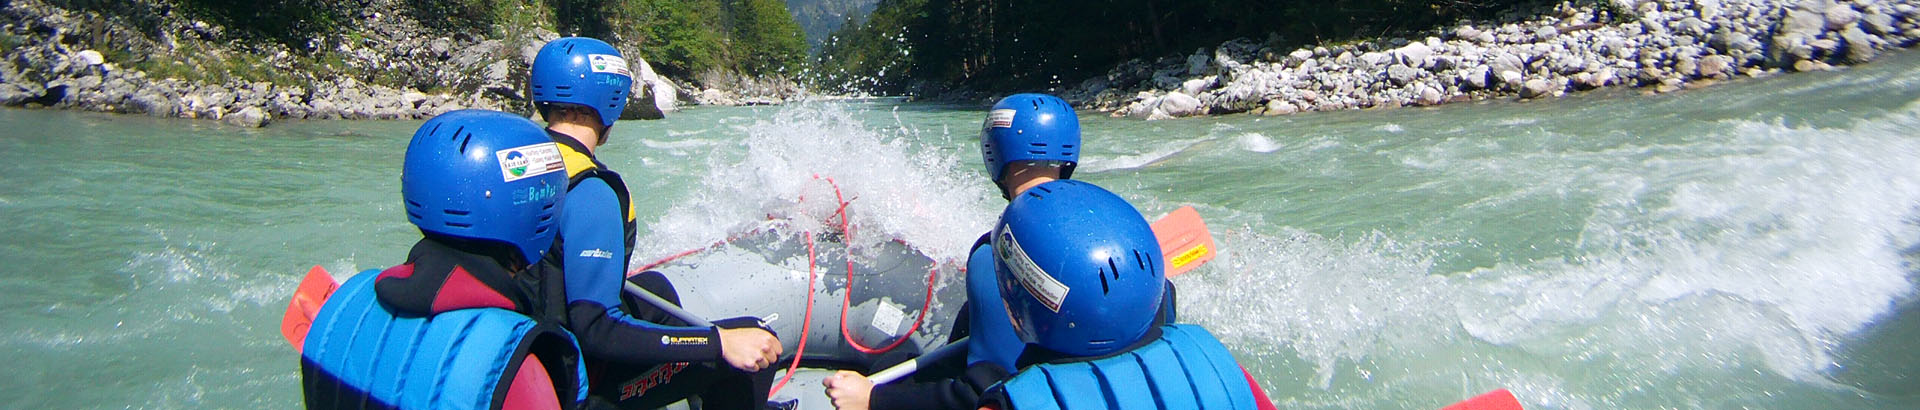 Saalach Rafting Lofer